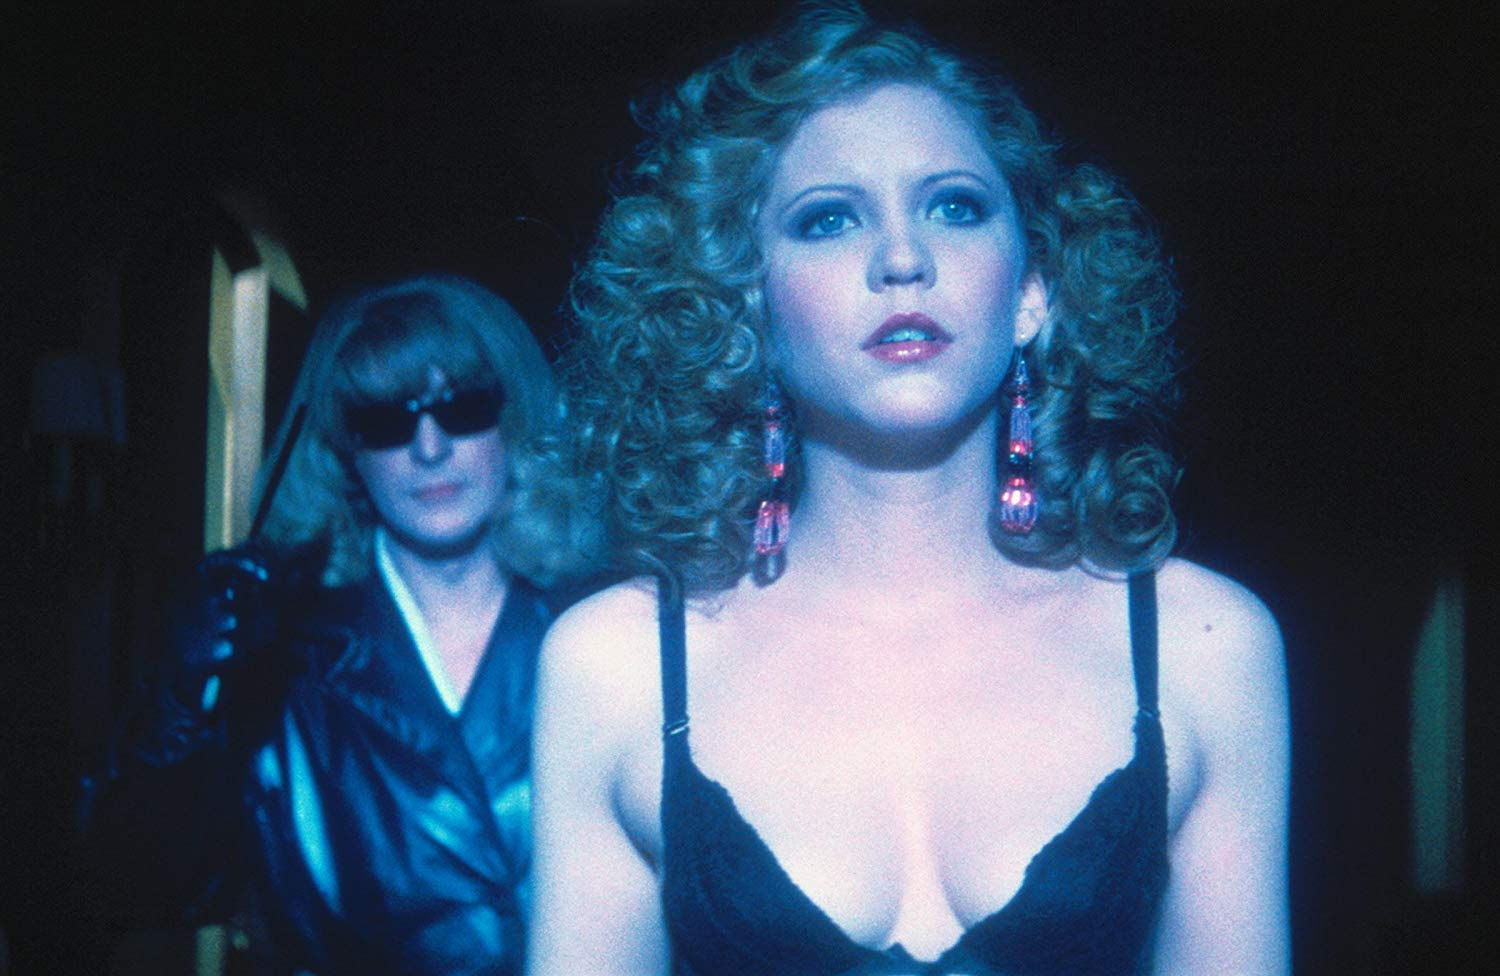 The prostitute Liz Blake (Nancy Allen) stalked by the transvestite killer in Dressed to Kill (1980)